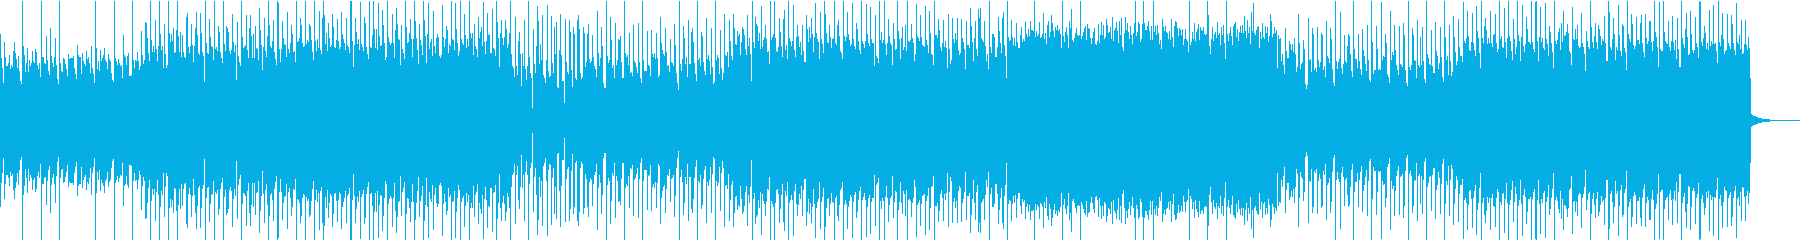 Corporate VP / CM exciting and refreshing's reproduced waveform